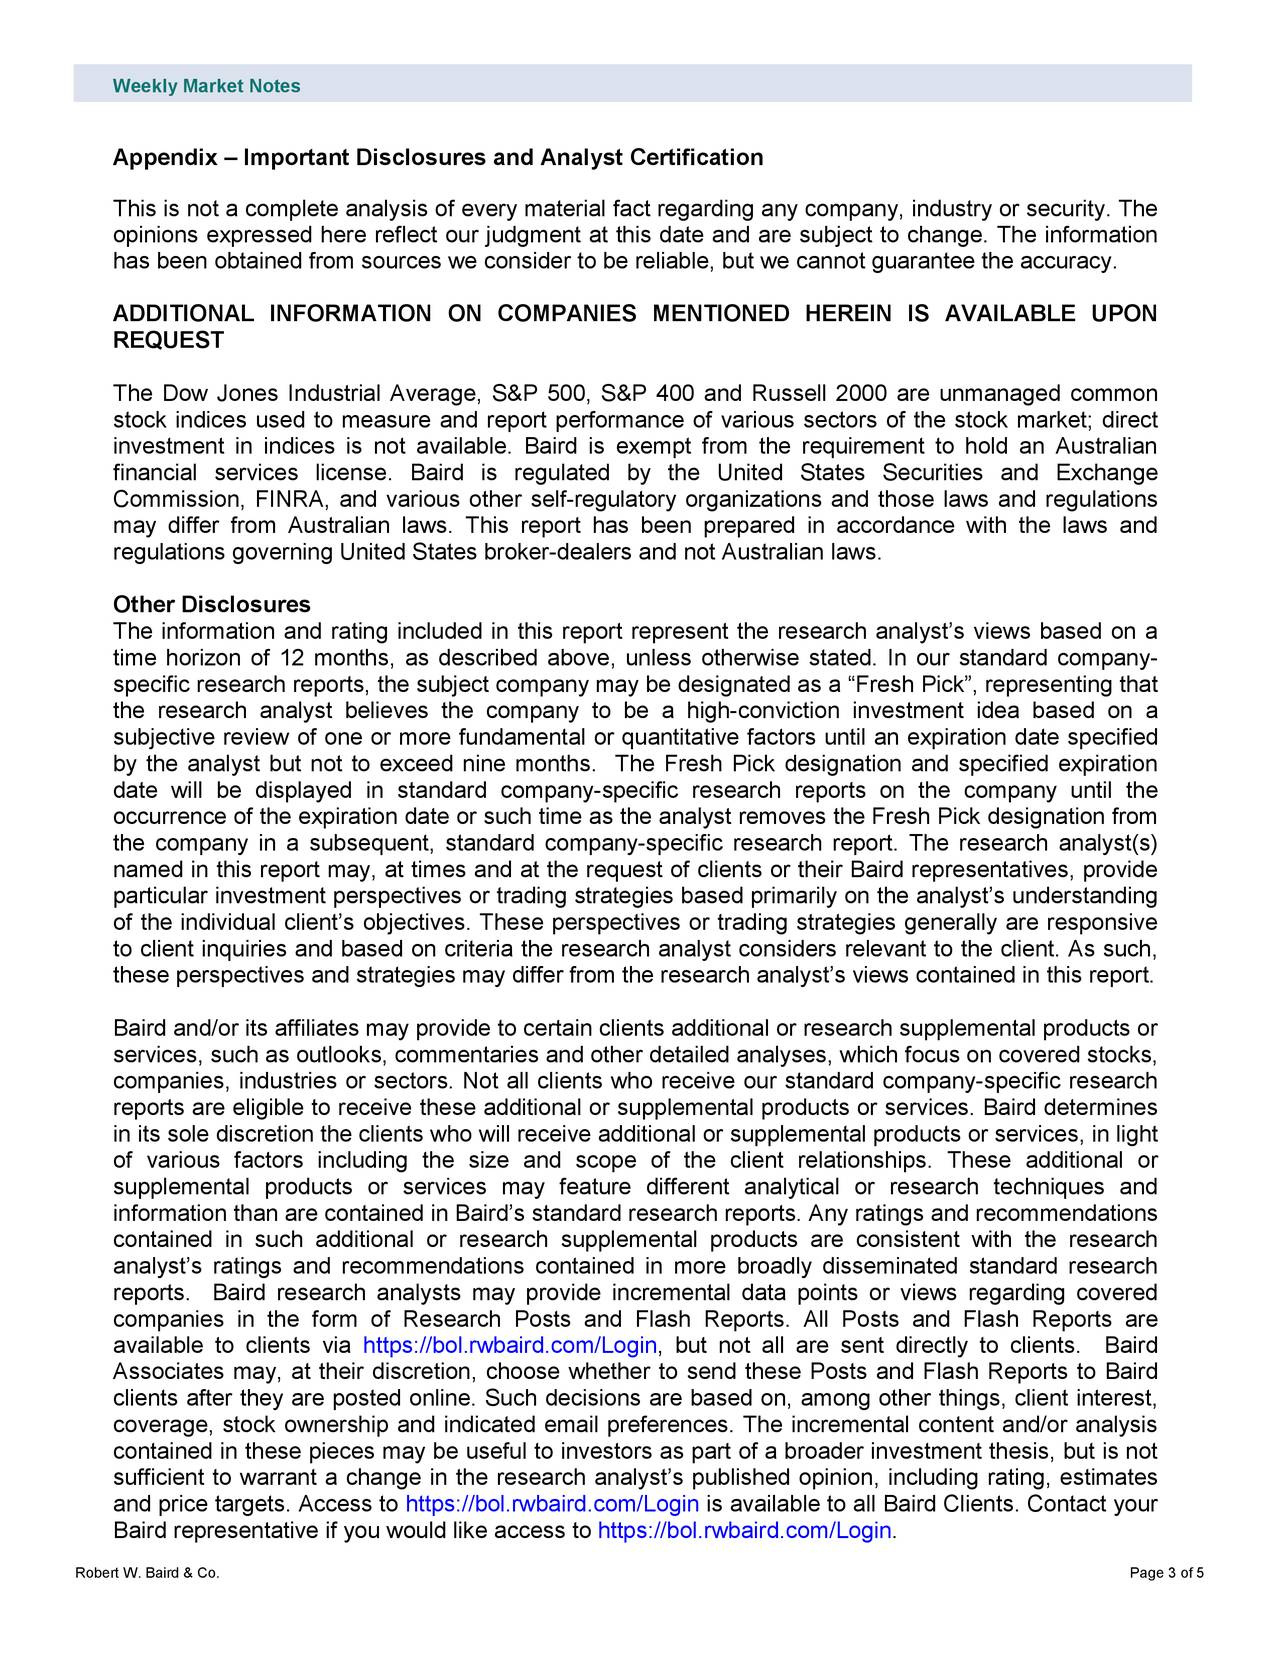 "Appendix – Important Disclosures and Analyst Certification This is not a complete analysis of every material fact regarding any company, industry or security. The opinions expressed here reflect our judgment at this date and are subject to change. The information has been obtained from sources we consider to be reliable, but we cannot guarantee the accuracy. ADDITIONAL INFORMATION ON COMPANIES MENTIONED HEREIN IS AVAILABLE UPON REQUEST The Dow Jones Industrial Average, S&P 500, S&P 400 and Russell 2000 are unmana ged common stock indices used to measure and report performance of various sectors of the stock market; direct investment in indices is not available. Baird is exempt from the requirement to hold an Australian financial services license. Baird is regulated by the United States Securities and Exchange Commission, FINRA, and various other self -regulatory organizations and those laws and regulations may differ from Australian laws. This report has been prepared in accordance with the laws and regulations governing United States broker-dealers and not Australian laws. Other Disclosures The information and rating included in this report represent the research analyst's views based on a time horizon of 12 months , as described above, unless otherwise stated. In ou r standard company- specific research reports, the subject company may be designated as a ""Fresh Pick"", representing that the research analyst believes the company to be a high -conviction investment idea based on a subjective review of one or more fundament al or quantitative factors until an expiration date specified by the analyst but not to exceed nine months. The Fresh Pick designation and specified expiration date will be displayed in standard company -specific research reports on the company until the occurrence of the expiration date or such time as the analyst removes the Fresh Pick designation from the company in a subsequent, standard company -specific research report. The research analyst(s) named in this report may, at times and at the request of cl ients or their Baird representatives, provide particular investment perspectives or trading strategies based primarily on the analyst's understanding of the individual client's objectives. These perspectives or trading strategies generally are responsive to client inquiries and based on criteria the research analyst considers relevant to the client. As such, these perspectives and strategies may differ from the research analyst's views contained in this report. Baird and/or its affiliates may provide to certain clients additional or research supplemental products or services, such as outlooks, commentaries and other detailed analyses, which focus on covered stocks, companies, industries or sectors. Not all clients who receive our standard company -specific research reports are eligible to receive these additional or supplemental products or services. Baird determines in its sole discretion the clients who will receive additional or supplemental products or services, in light of various factors including the s ize and scope of the client relationships. These additional or supplemental products or services may feature different analytical or research techniques and information than are contained in Baird's standard research reports. Any ratings and recommendations contained in such additional or research supplemental products are consistent with the research analyst's ratings and recommendations contained in more broadly disseminated standard research reports. Baird research analysts may provide incremental data points or views regarding covered companies in the form of Research Posts and Flash Reports. All Posts and Flash Reports are available to clients via https://bol.rwbaird.com/Login, but not all are sent directly to clients. Baird Associates may, at their discretion, choose whether to send these Posts and Flash Reports to Baird clients after they are posted online. Such decisions are based on, among other things, client interest, coverage, stock ownership and indicated email preferences. The incremental cont ent and/or analysis contained in these pieces may be useful to investors as part of a broader investment thesis, but is not sufficient to warrant a change in the research analyst's published opinion, including rating, estimates and price targets. Access to https://bol.rwbaird.com/Login is available to all Baird Clients. Contact your Baird representative if you would like access to https://bol.rwbaird.com/Login. Robert W. Baird & Co. Page 3 of 5"